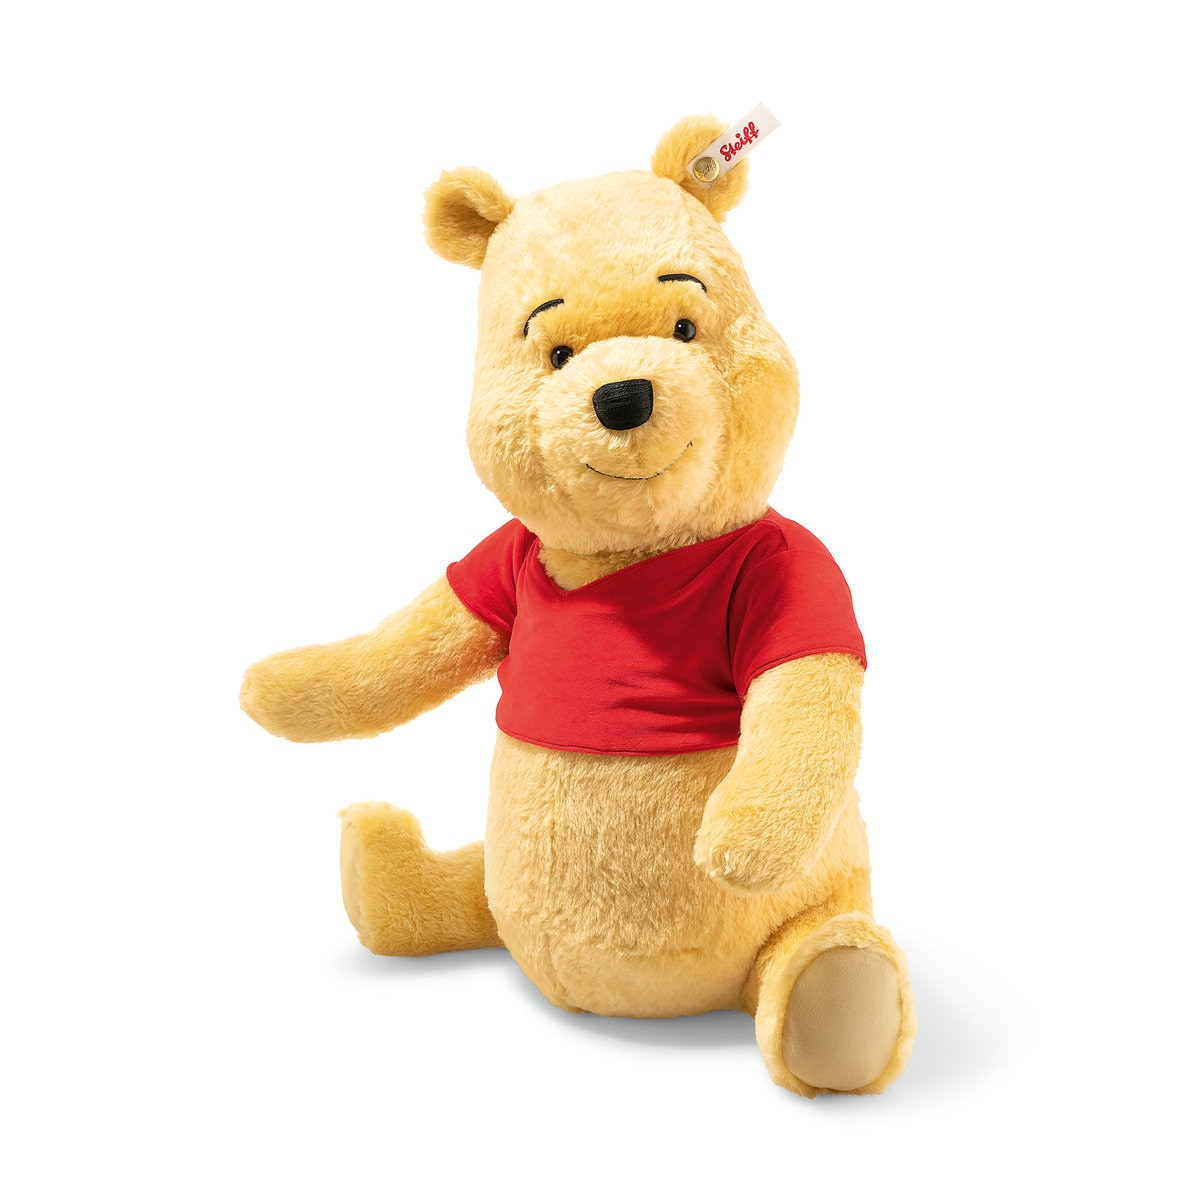 f4afafece2f Product Image of Winnie the Pooh Collectible by Steiff - 34'' - Limited  Edition